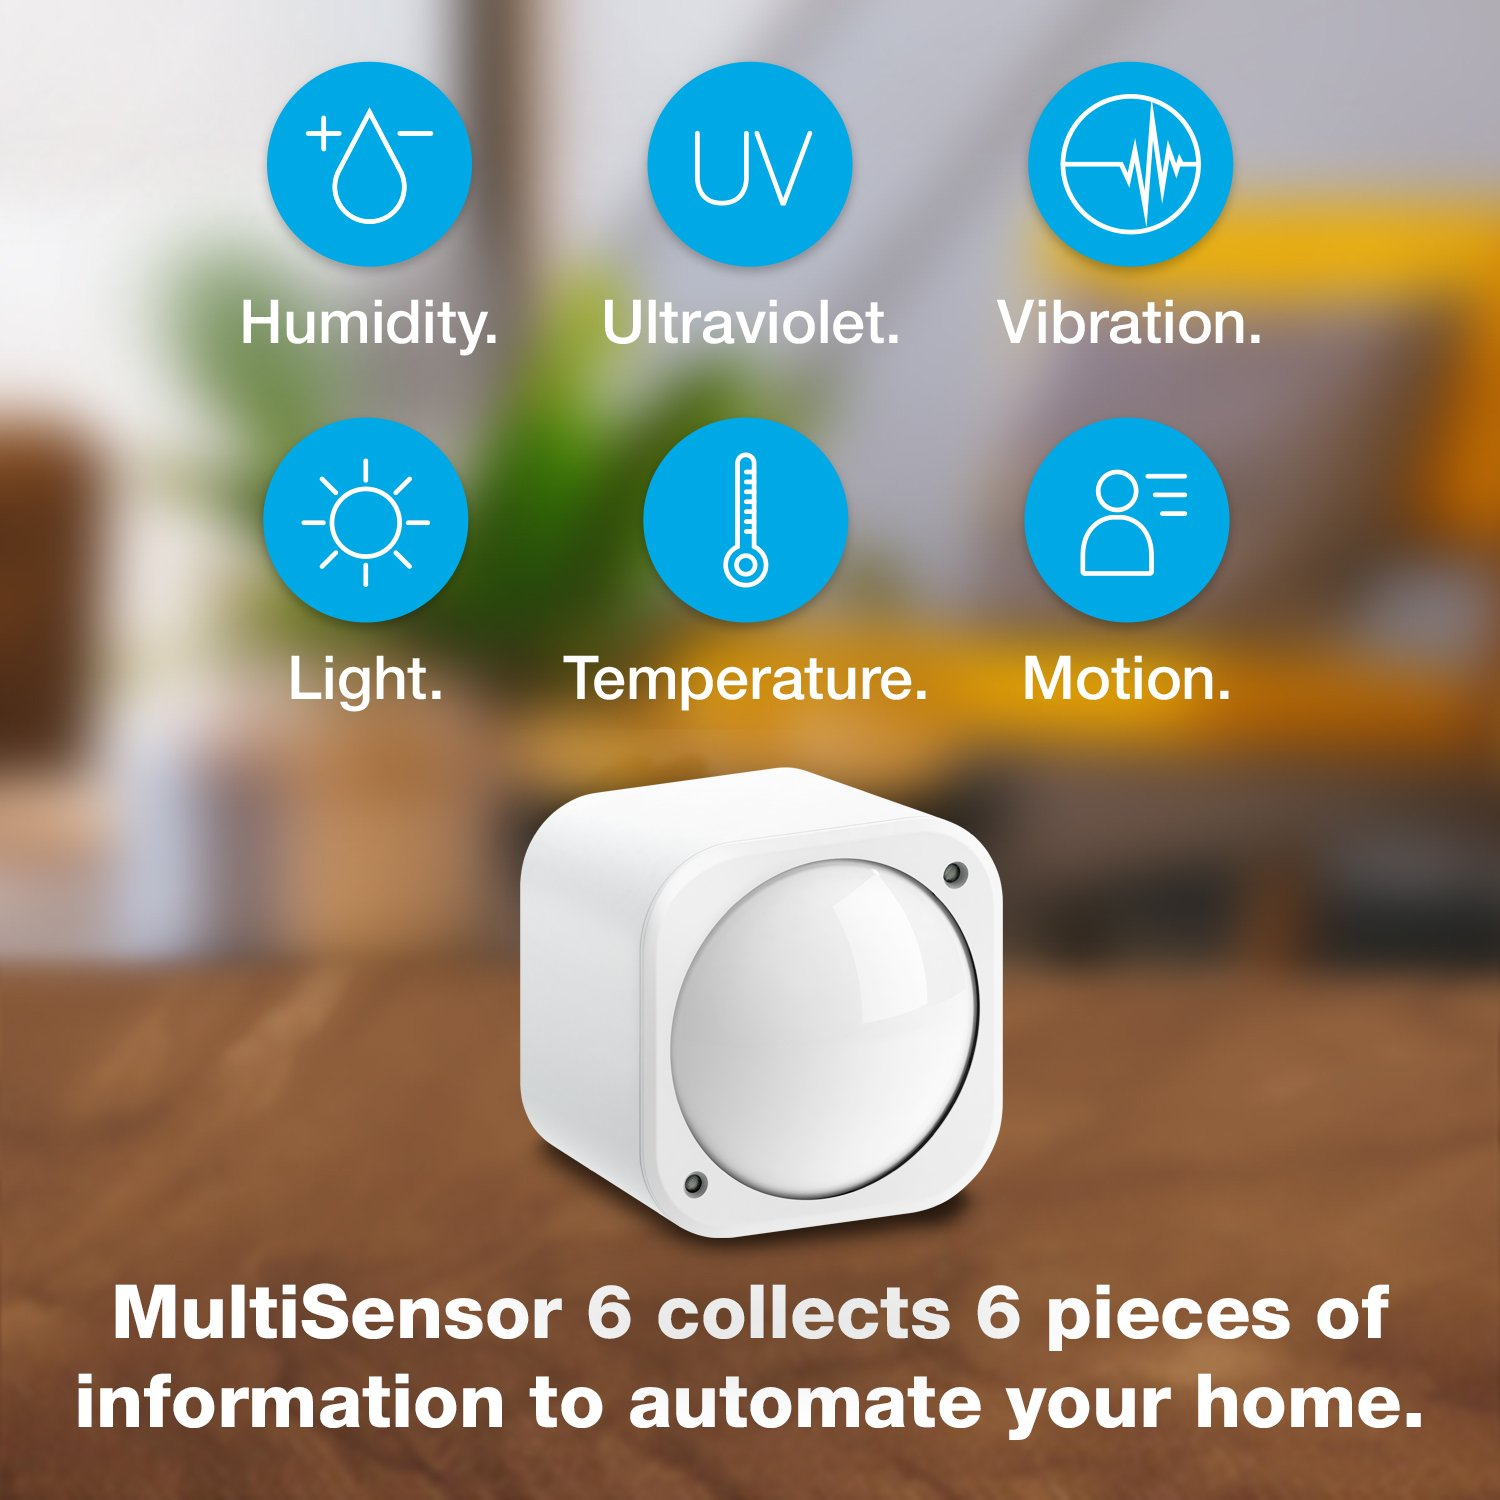 Aeotec Multisensor 6 with Battery, Z-Wave Plus 6-in-1 Motion, Temperature, Humidity, Light, UV, Vibration Sensor by Aeotec (Image #2)